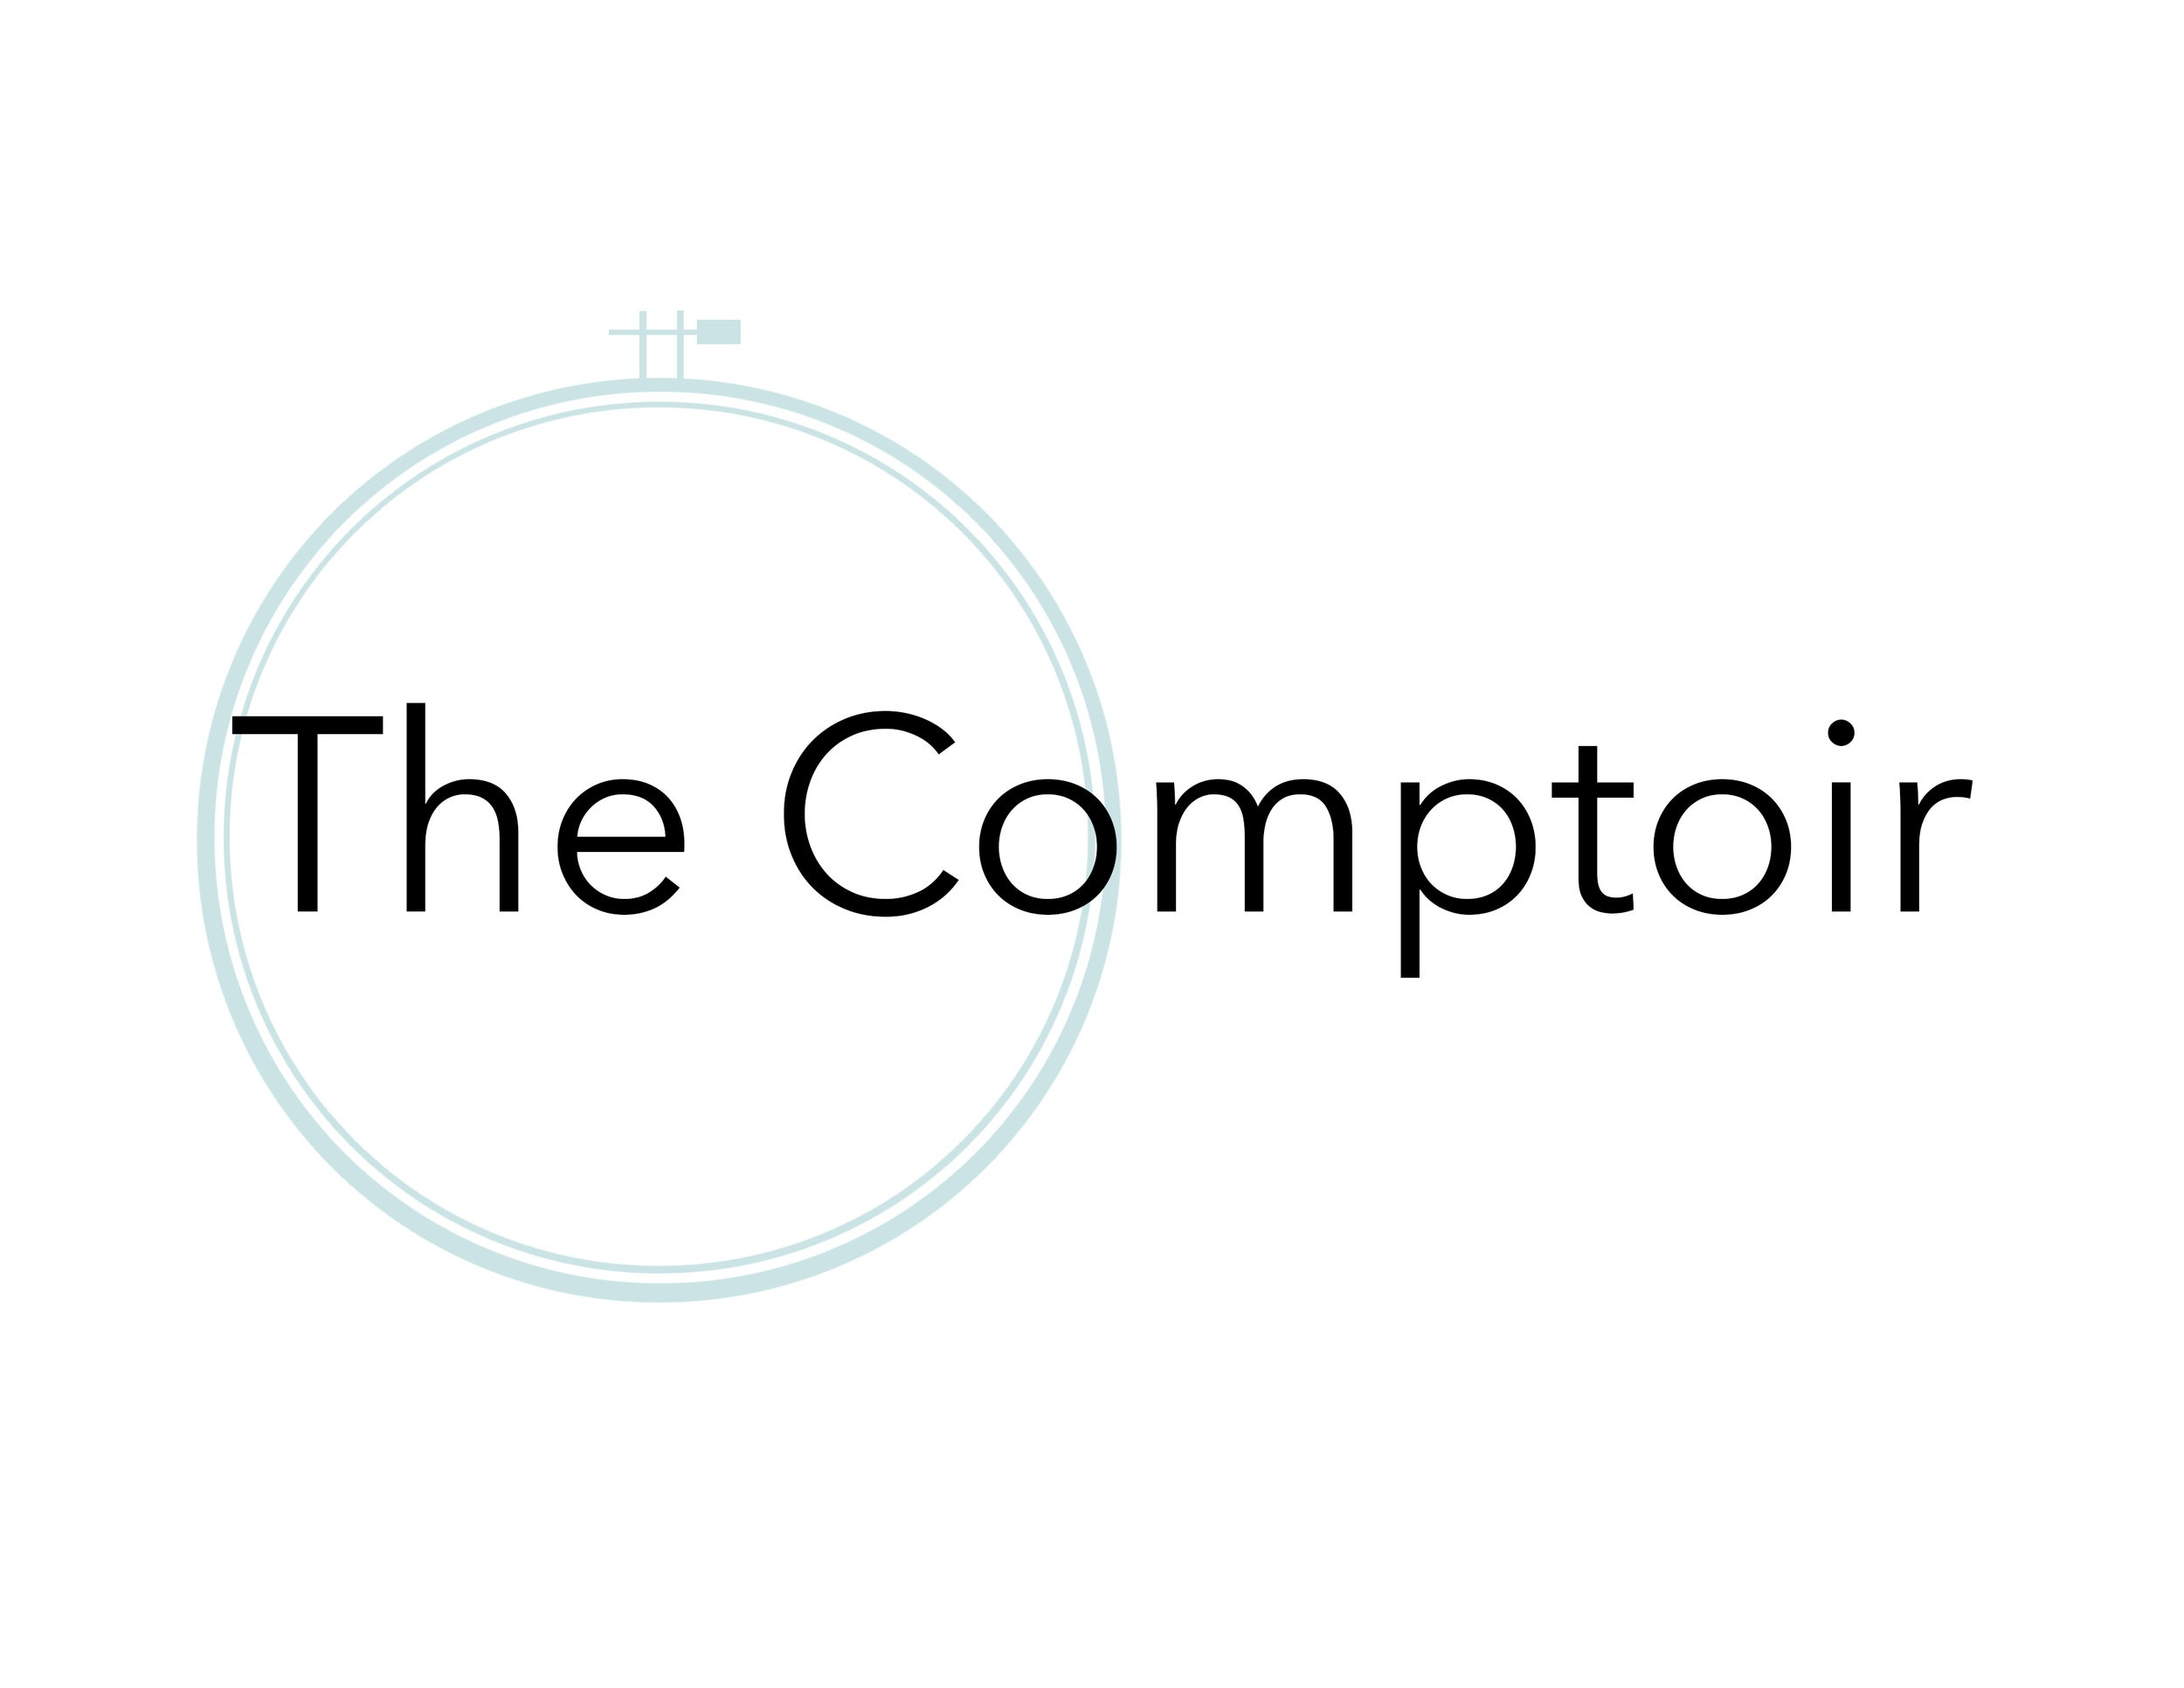 The Compoir